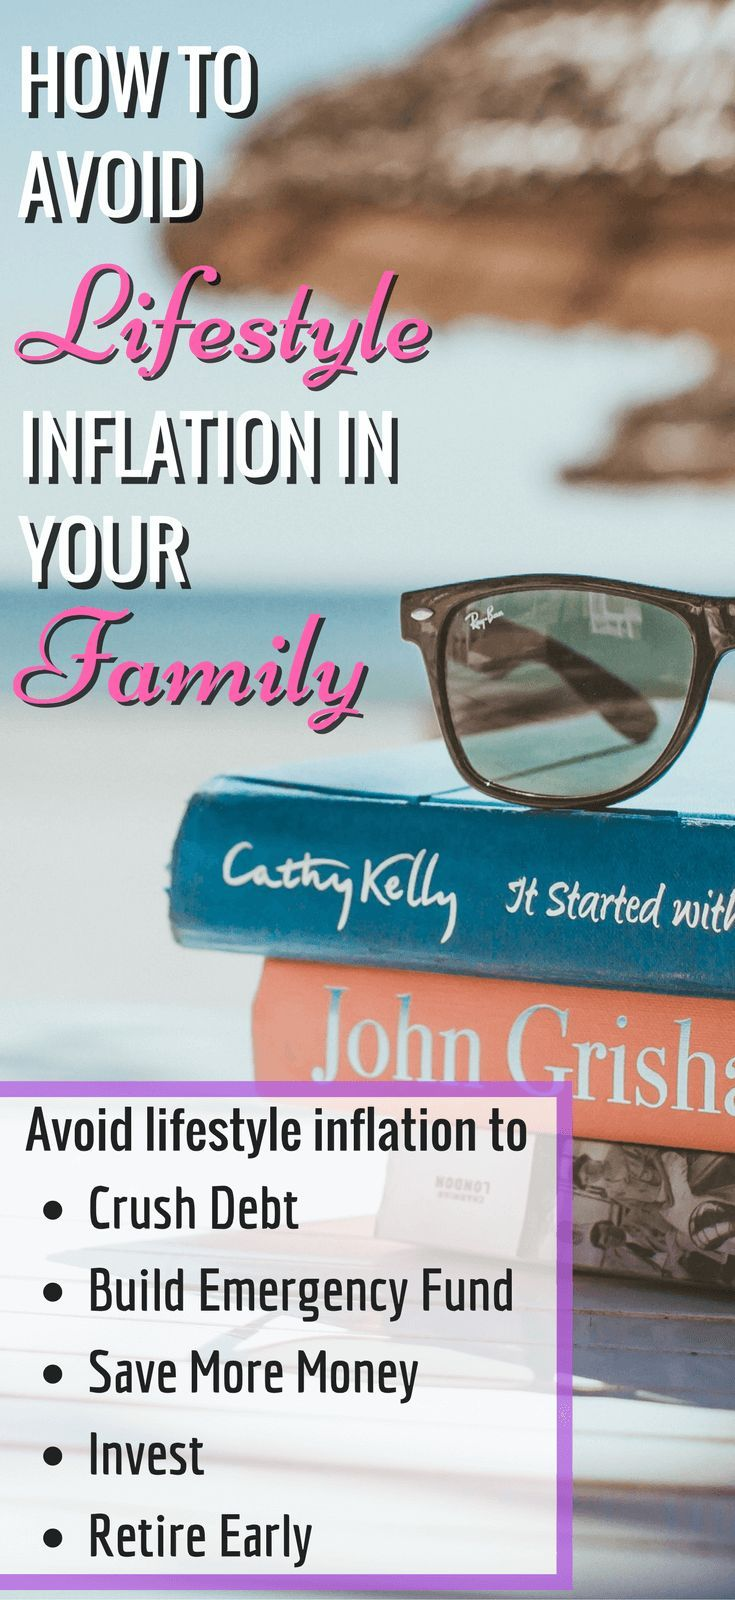 Lifestyle inflation can be very negative for your finances. Learn how and why you should avoid lifestyle inflation as much as you can.